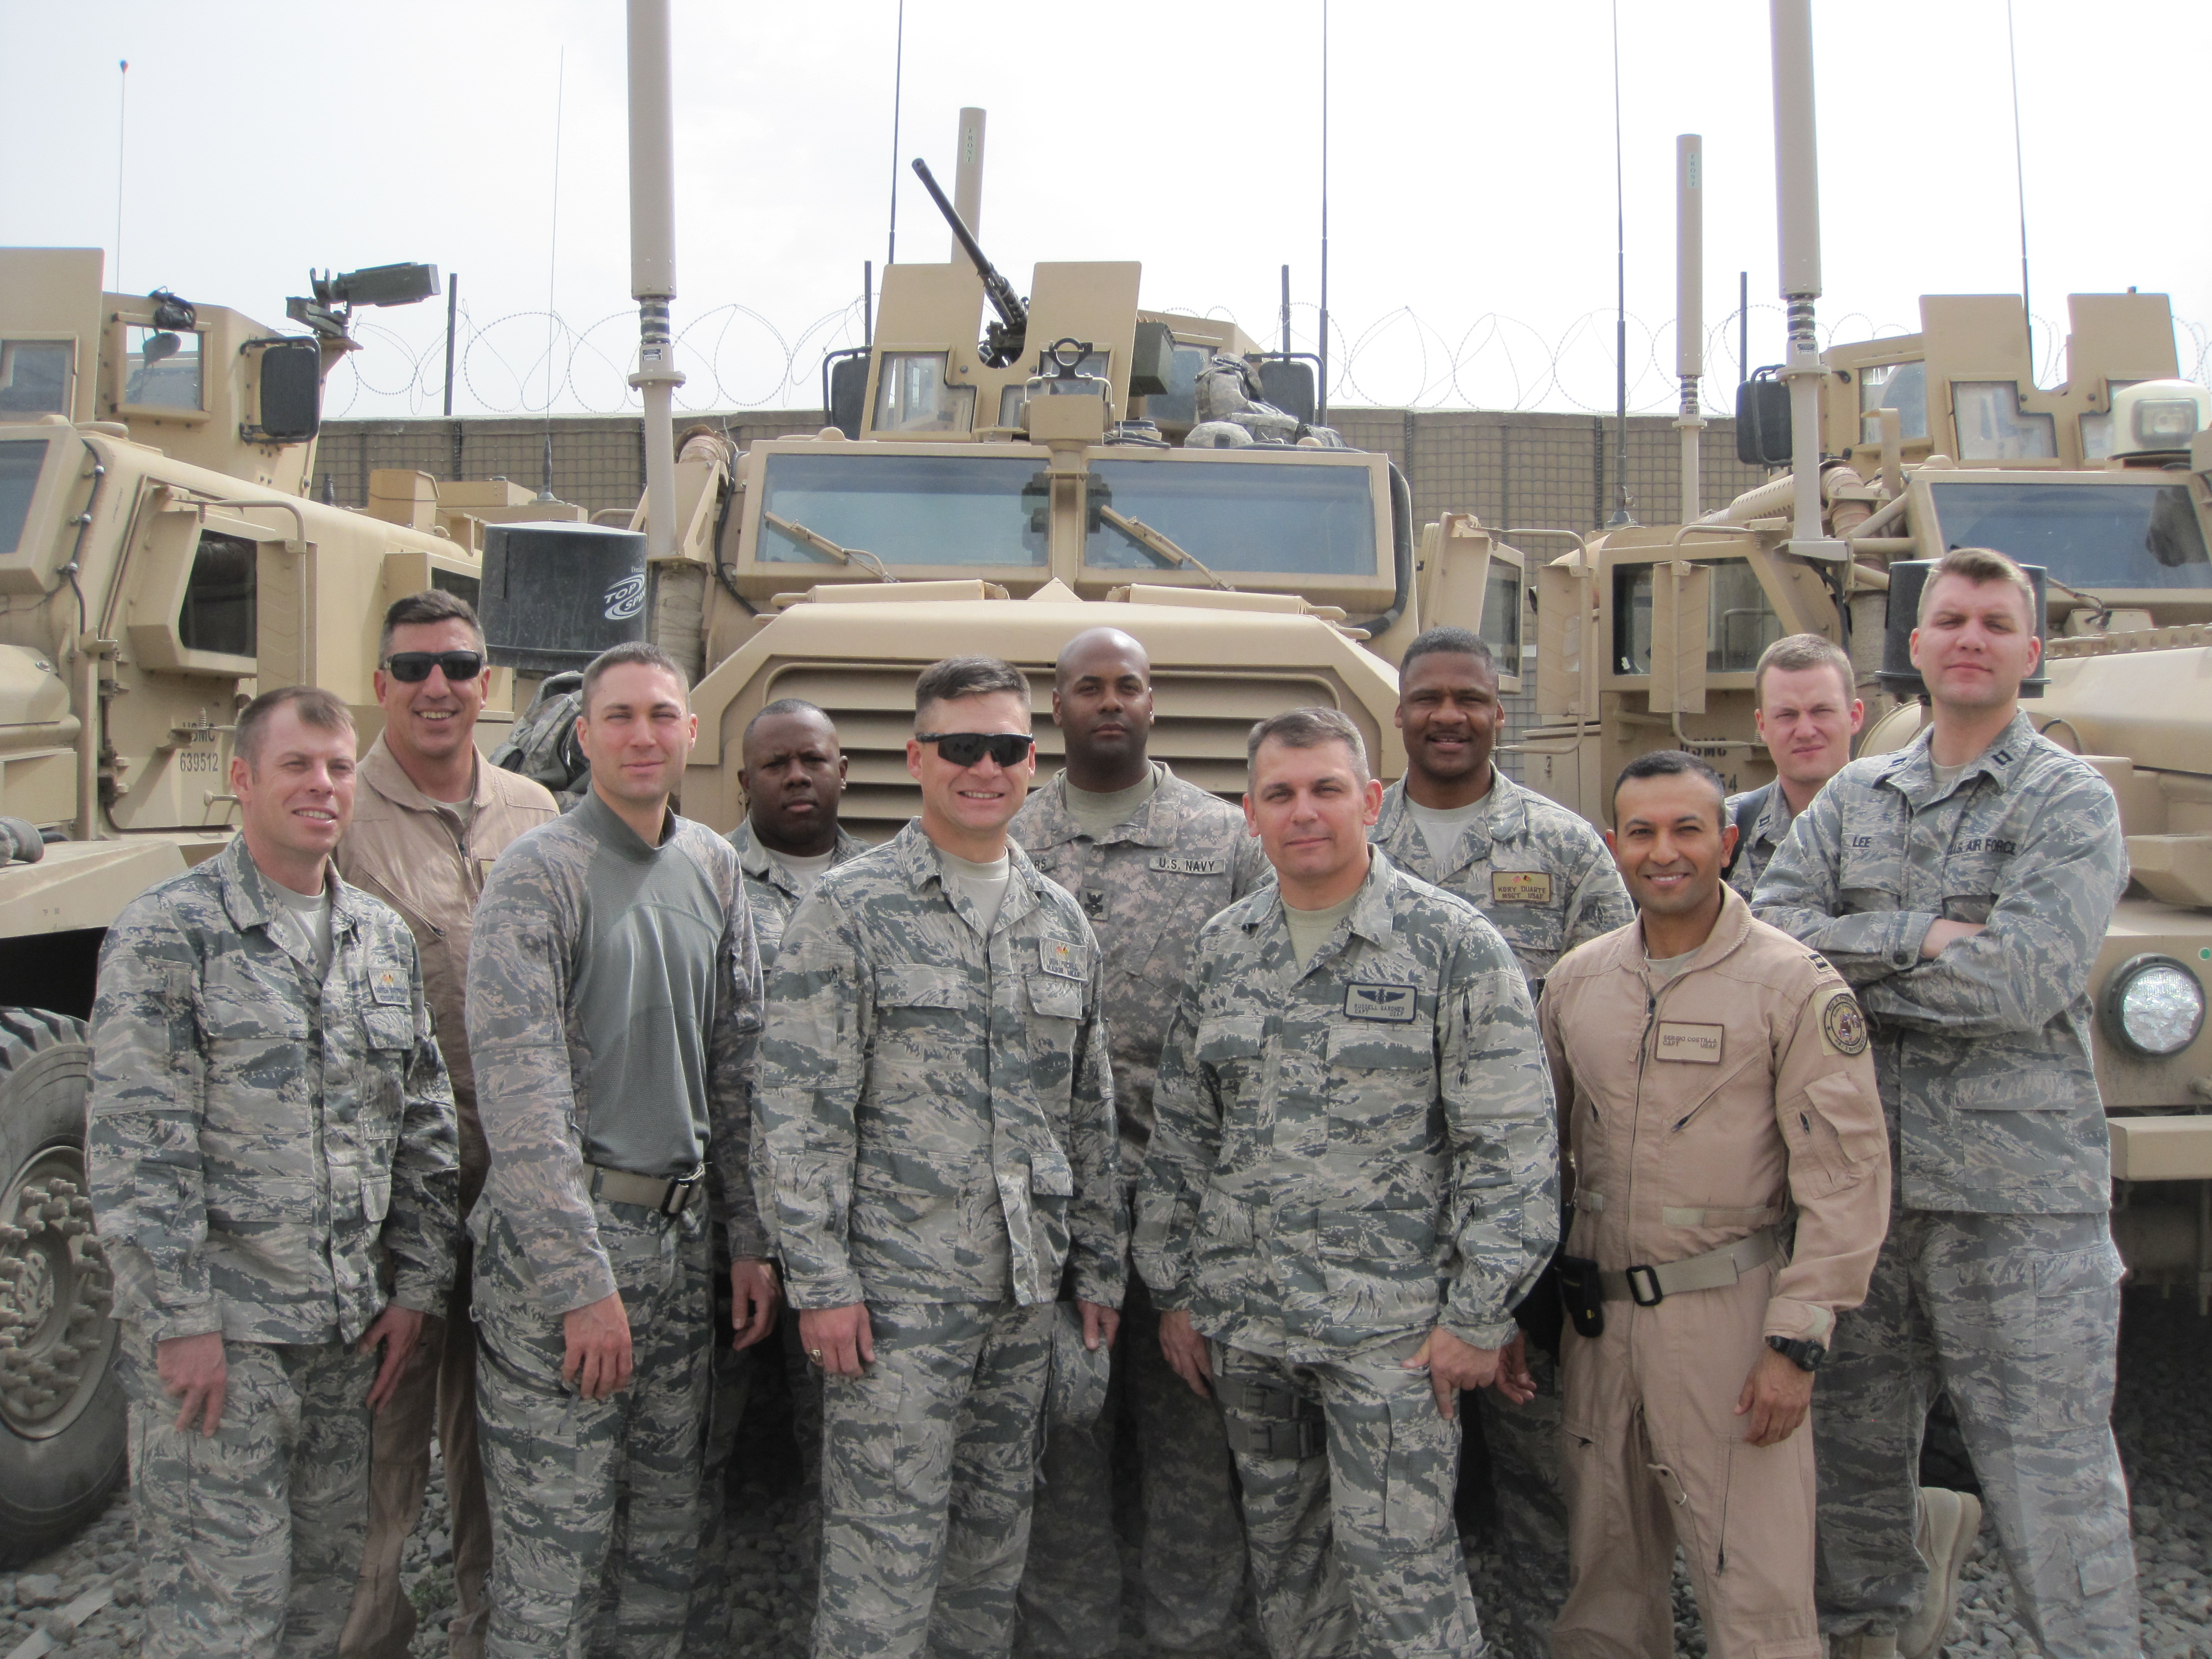 fort riley black single men Meet single black men and women in fort riley, kansas, with mingle2's fort riley dating services for blacks find a date with a sexy black single in fort riley or start up a relationship online in our fort riley chat rooms.